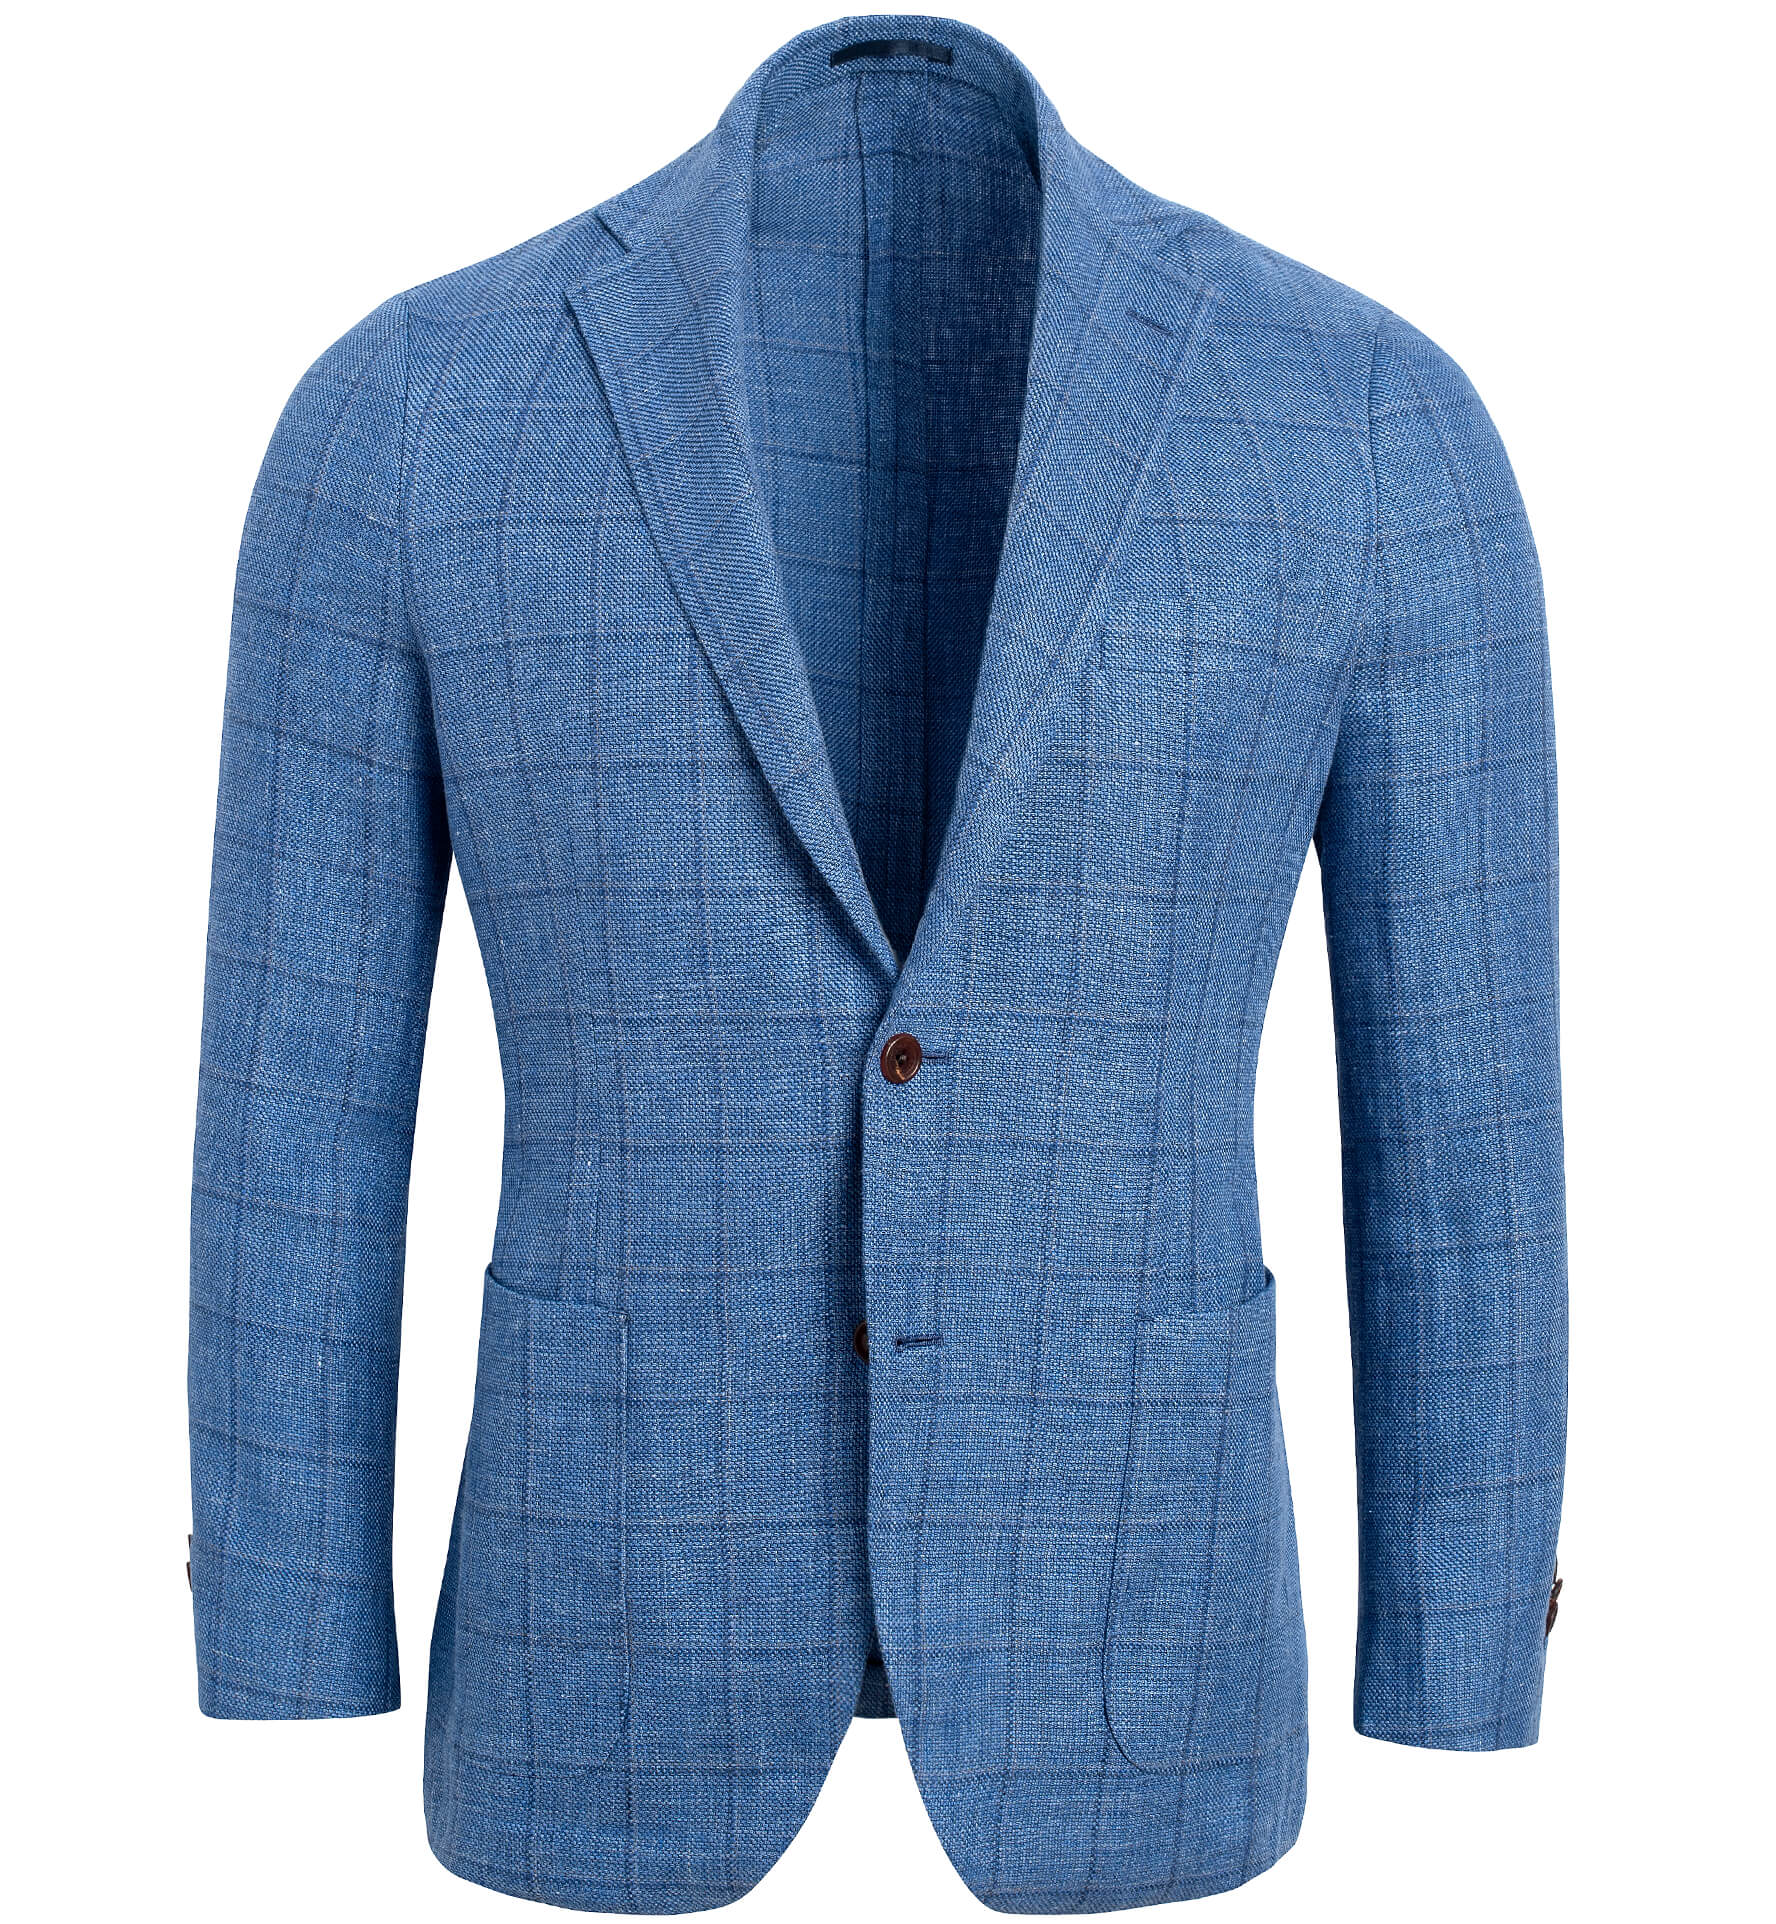 Zoom Image of Bedford Light Blue Windowpane Linen and Wool Jacket